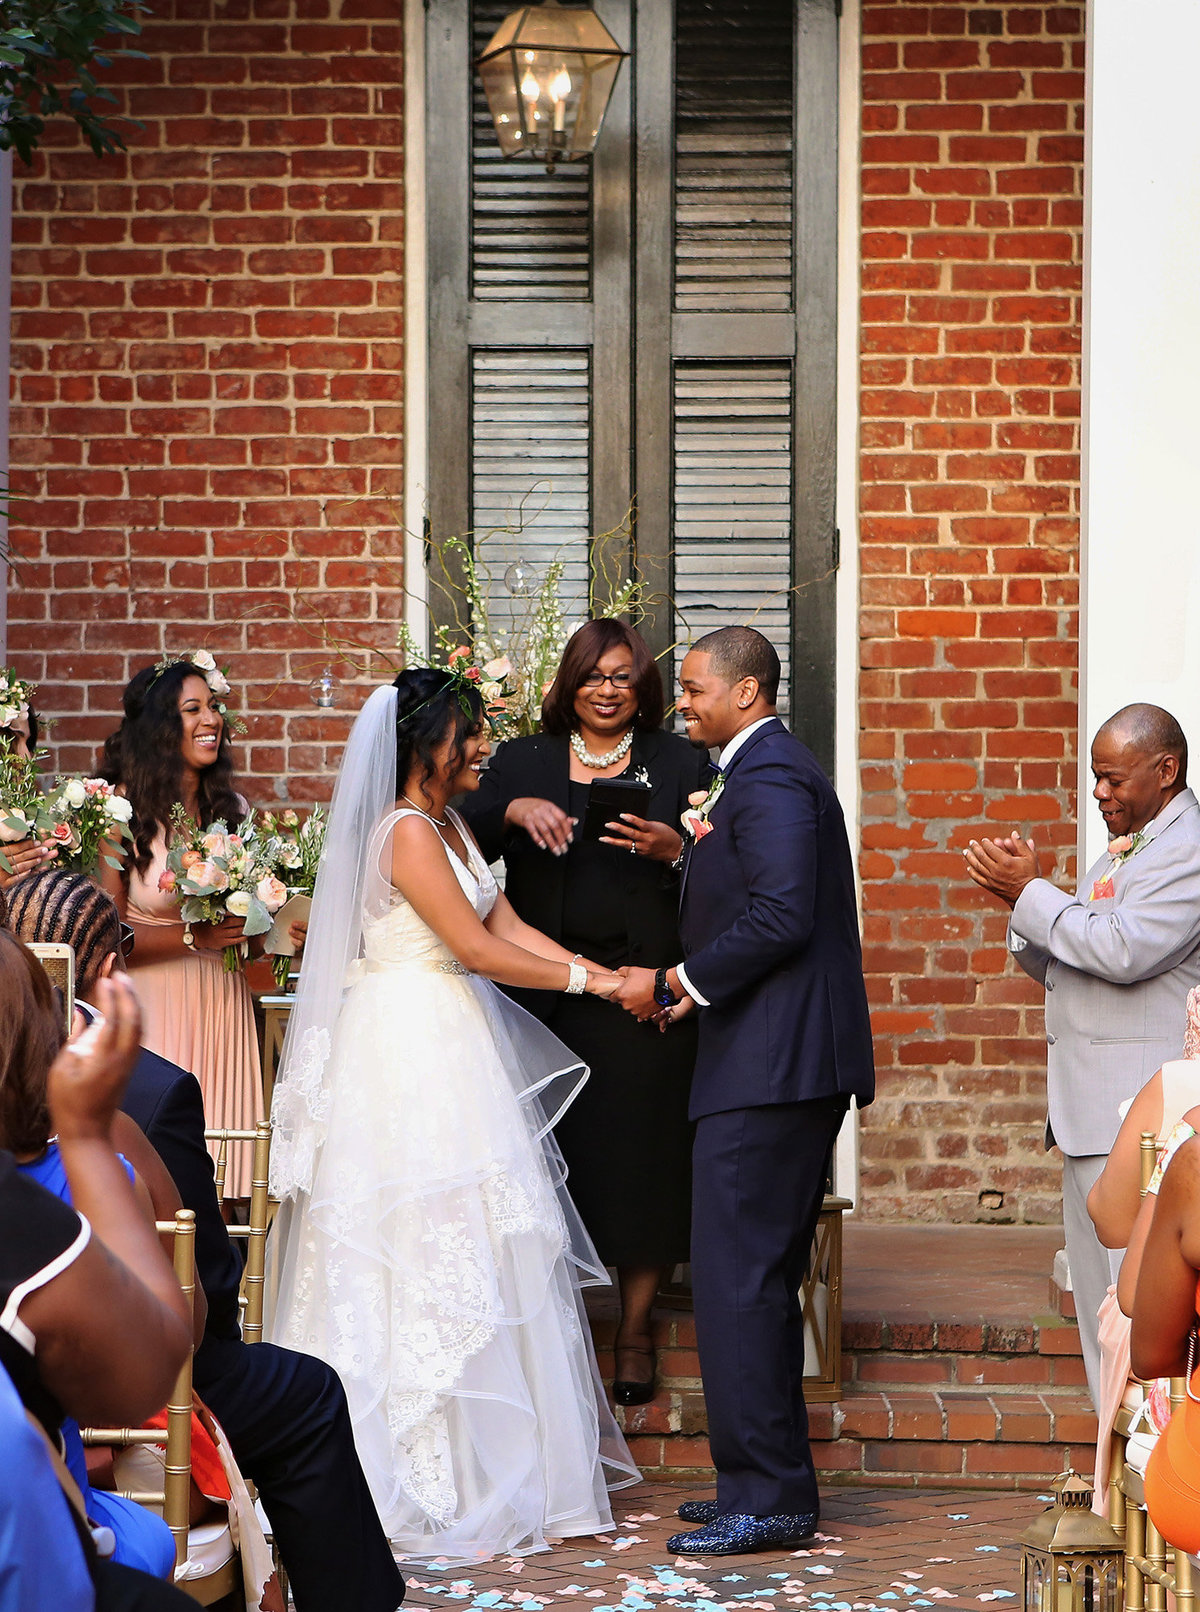 Chateau-LeMoyne-Hotel-courtyard-wedding-by-Becky-Cooper-Photography